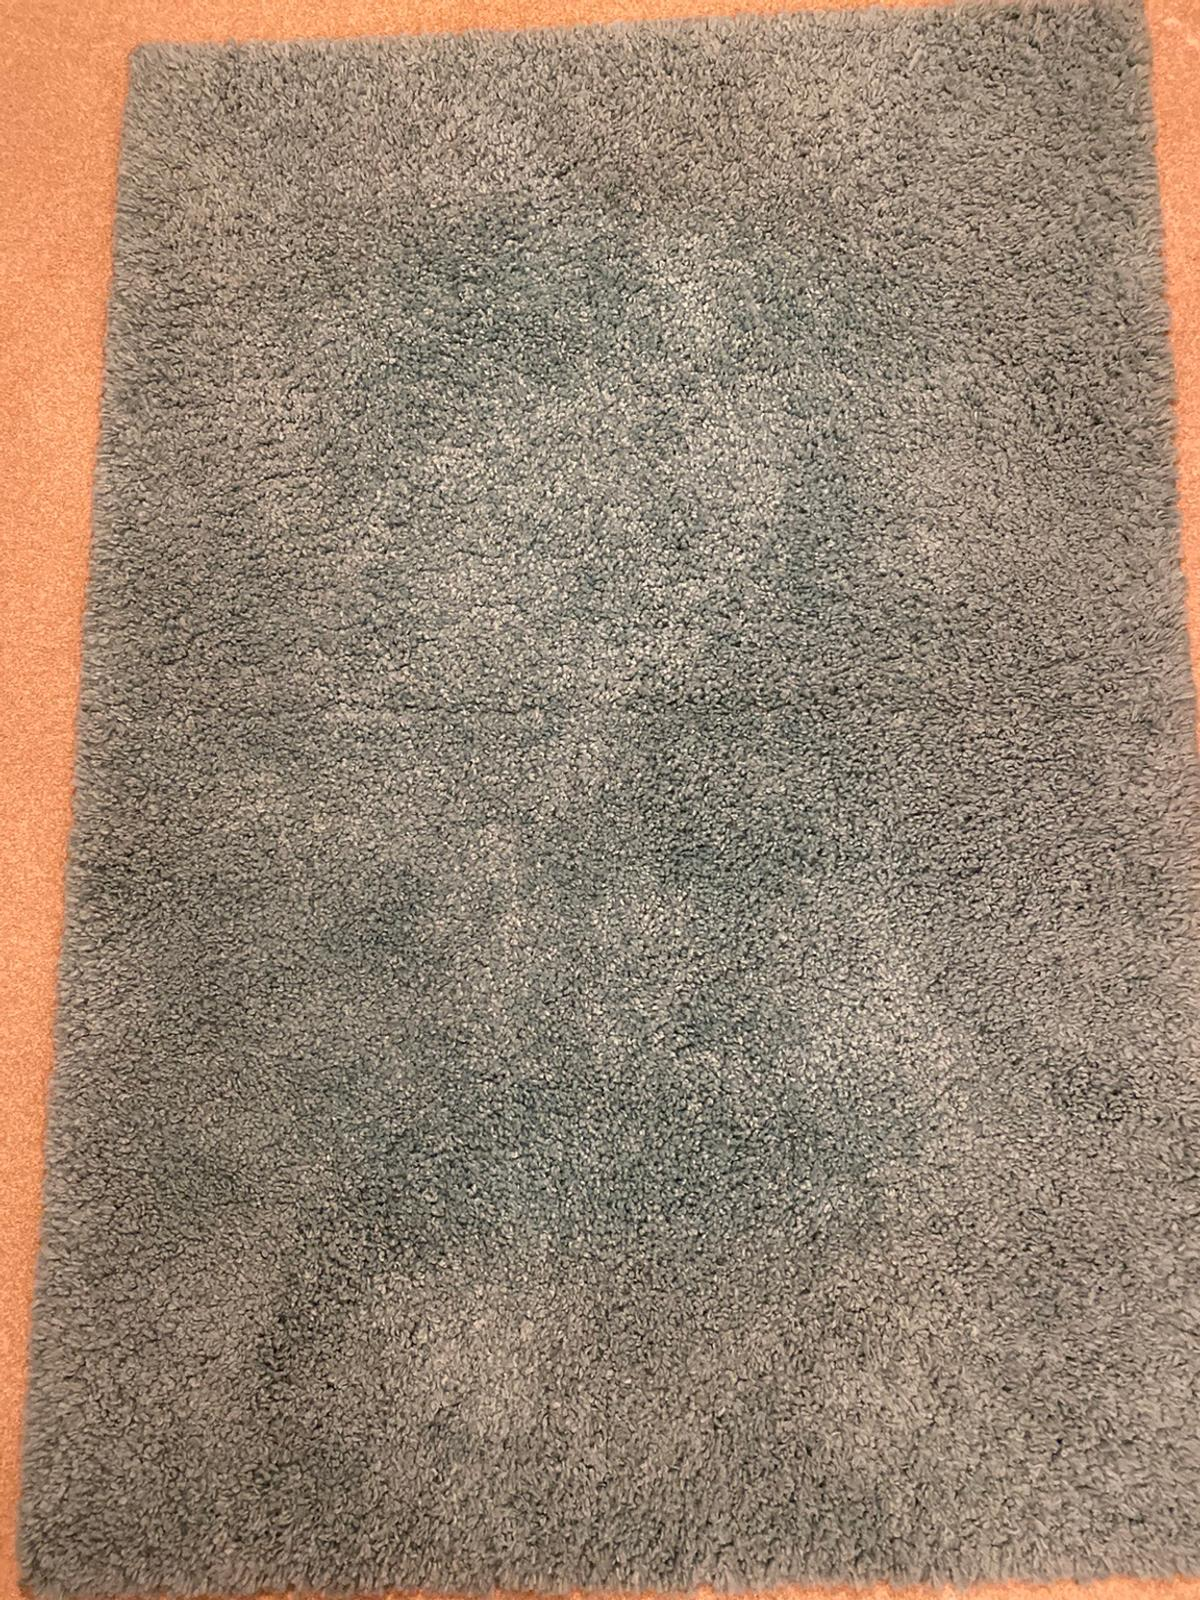 Rug in S13 Sheffield for £18.00 for